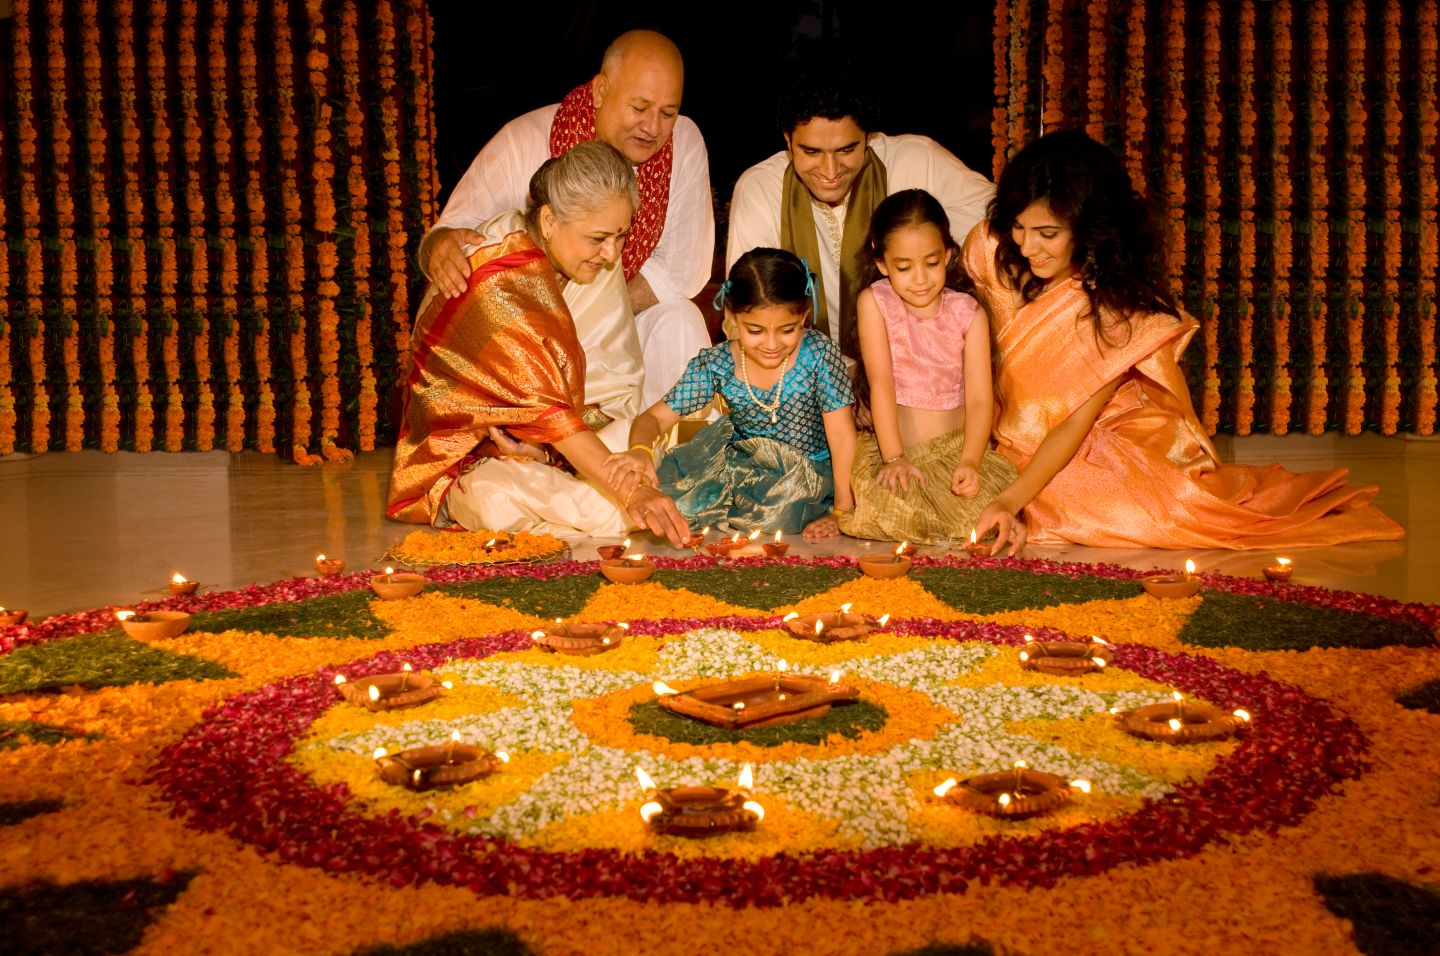 Decorating Home For Diwali Dk Find Out Fun Facts For Kids On Animals Earth